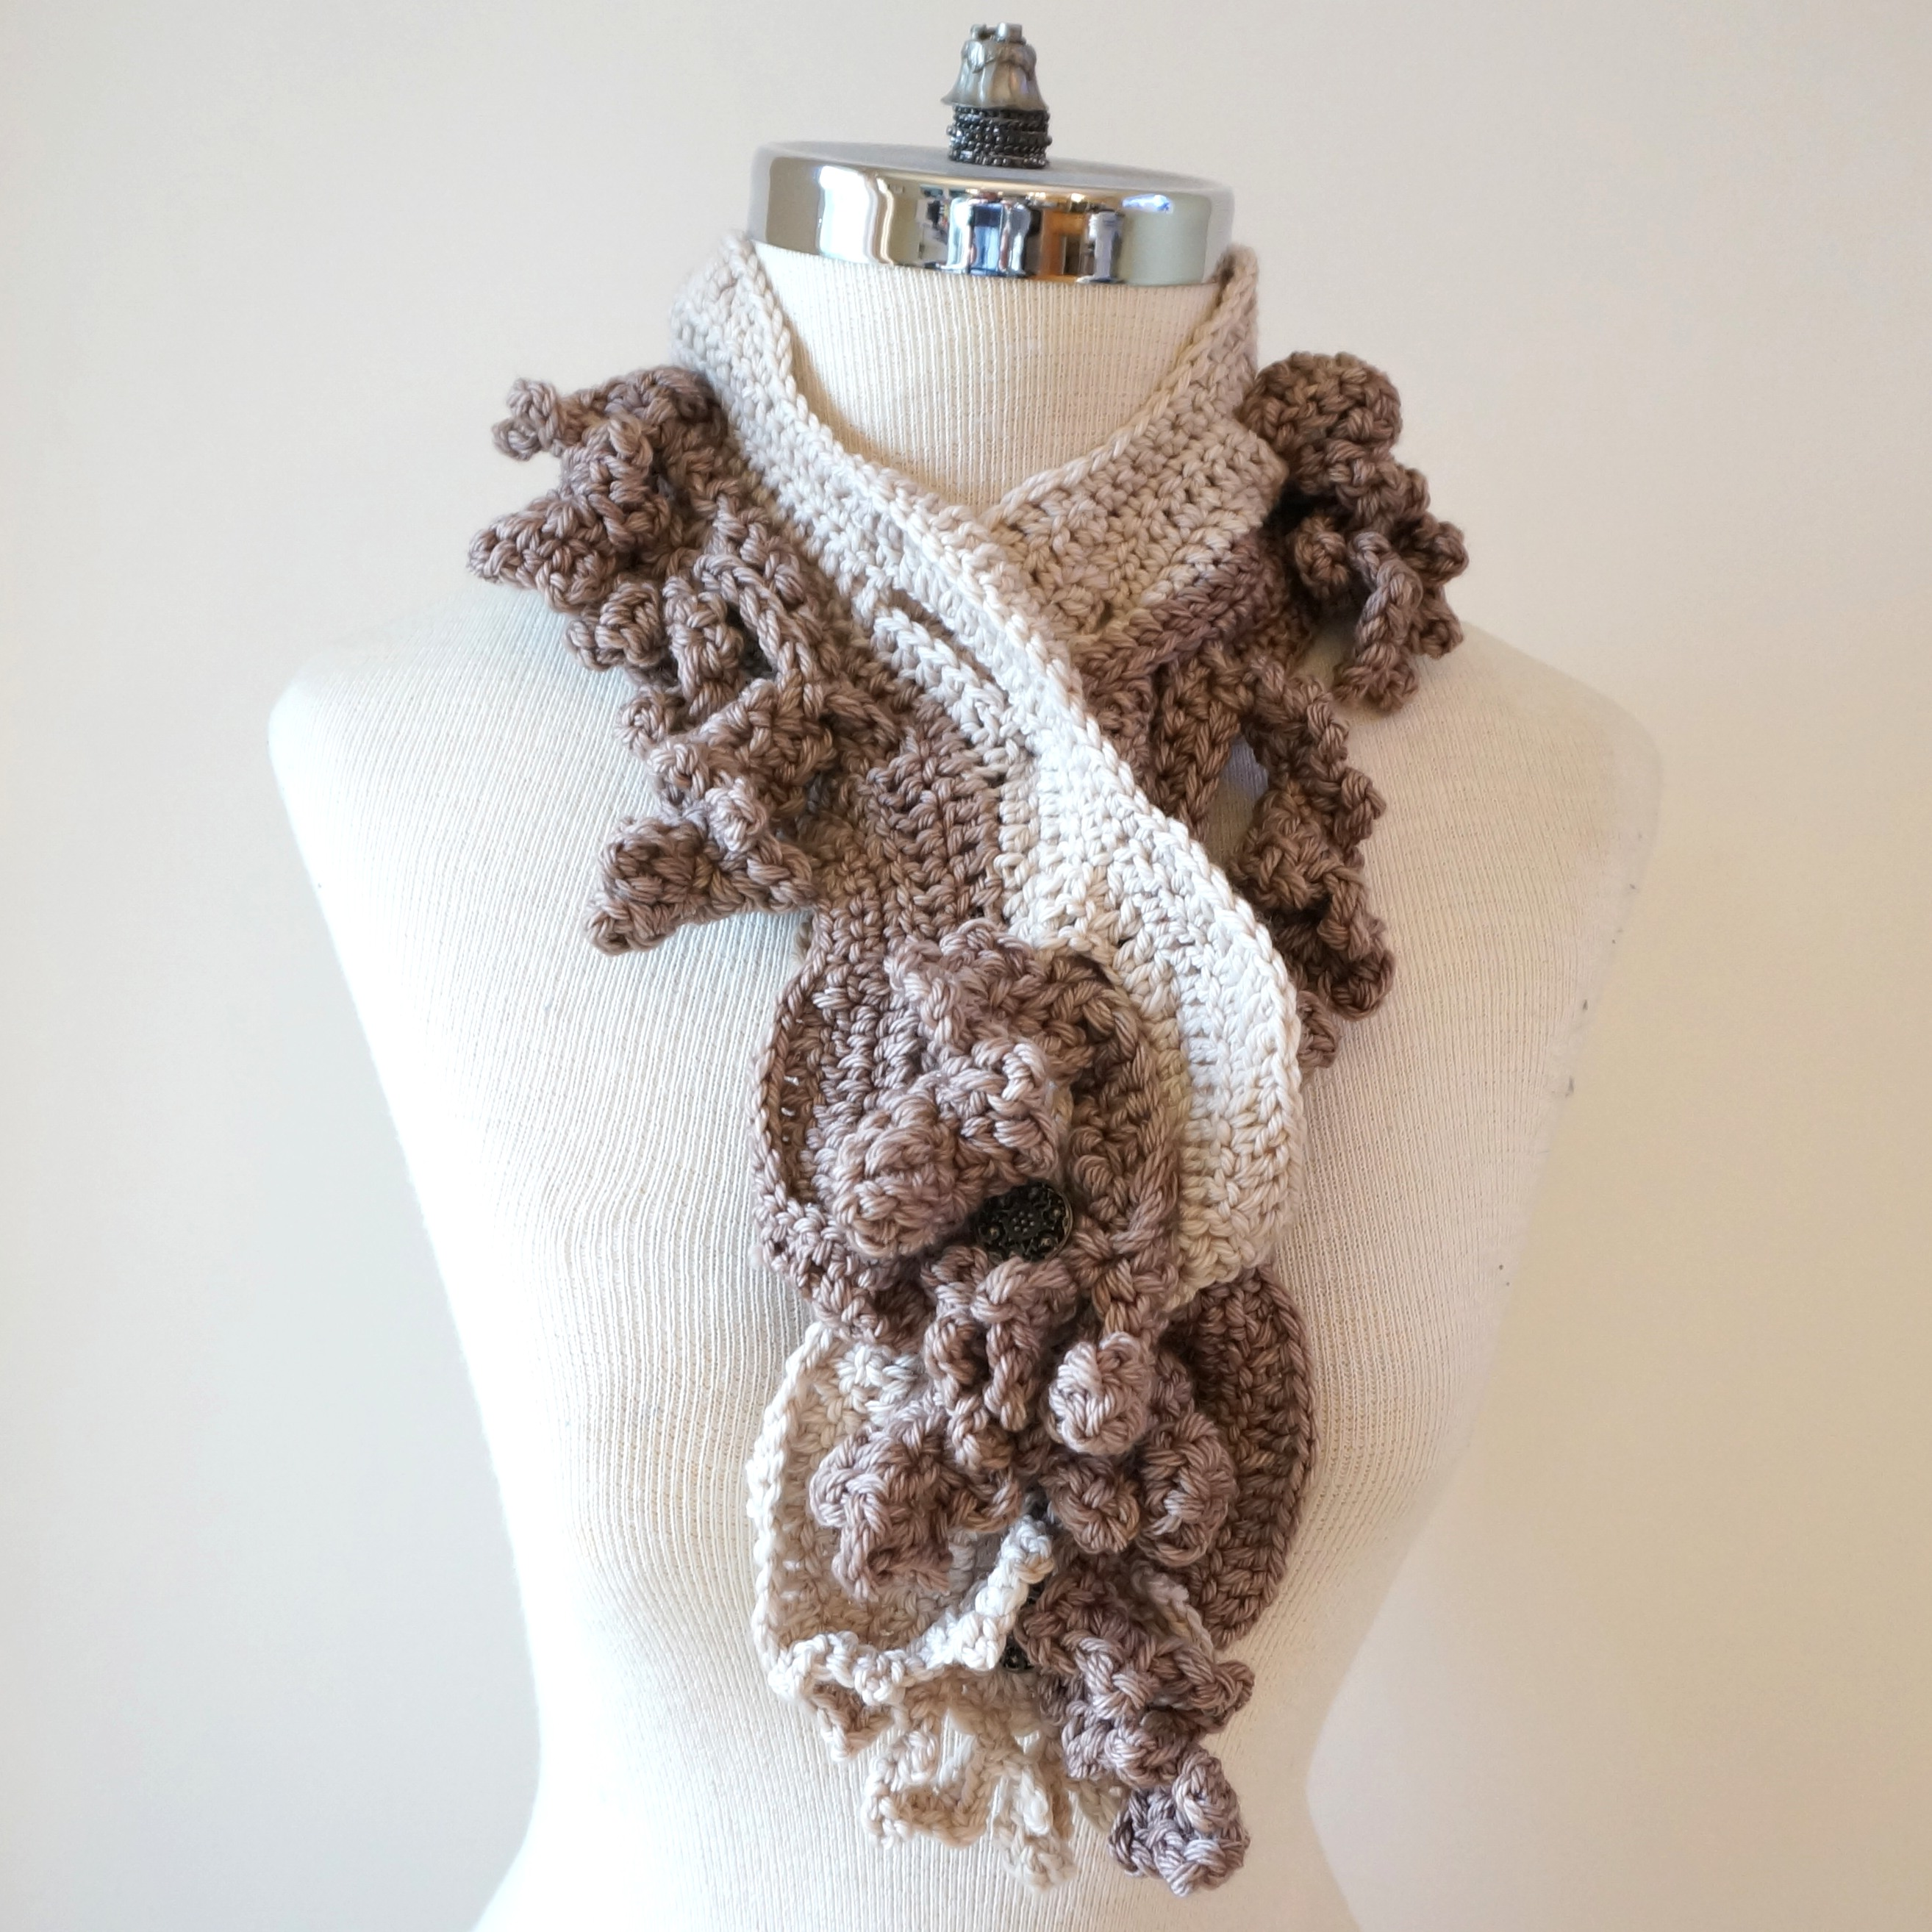 floral-scarf-architectural-design-ivory-beige6